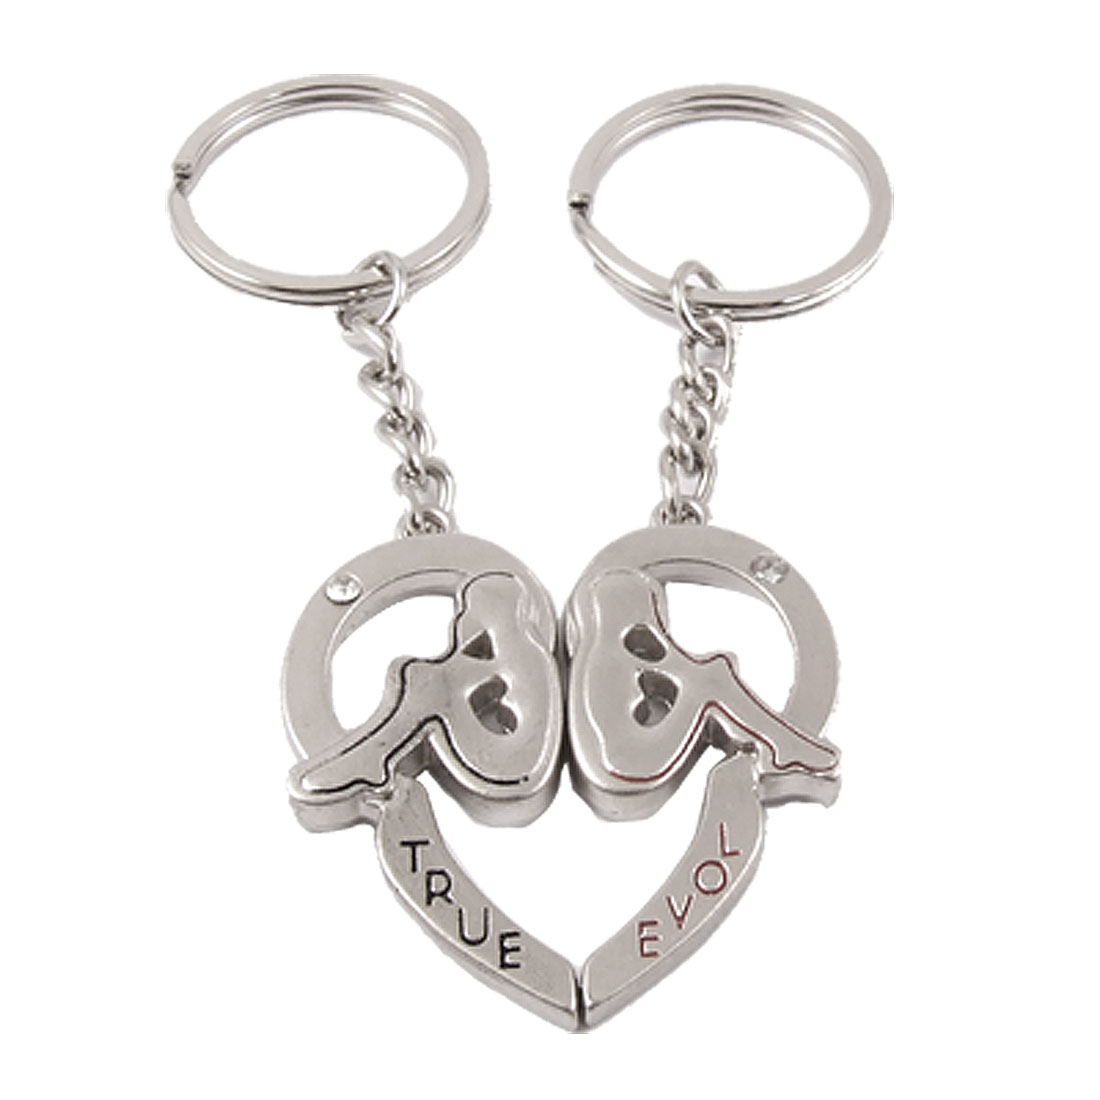 Lovers Rhinestone Accent Back to Back Heart Pendant Charms Keyring